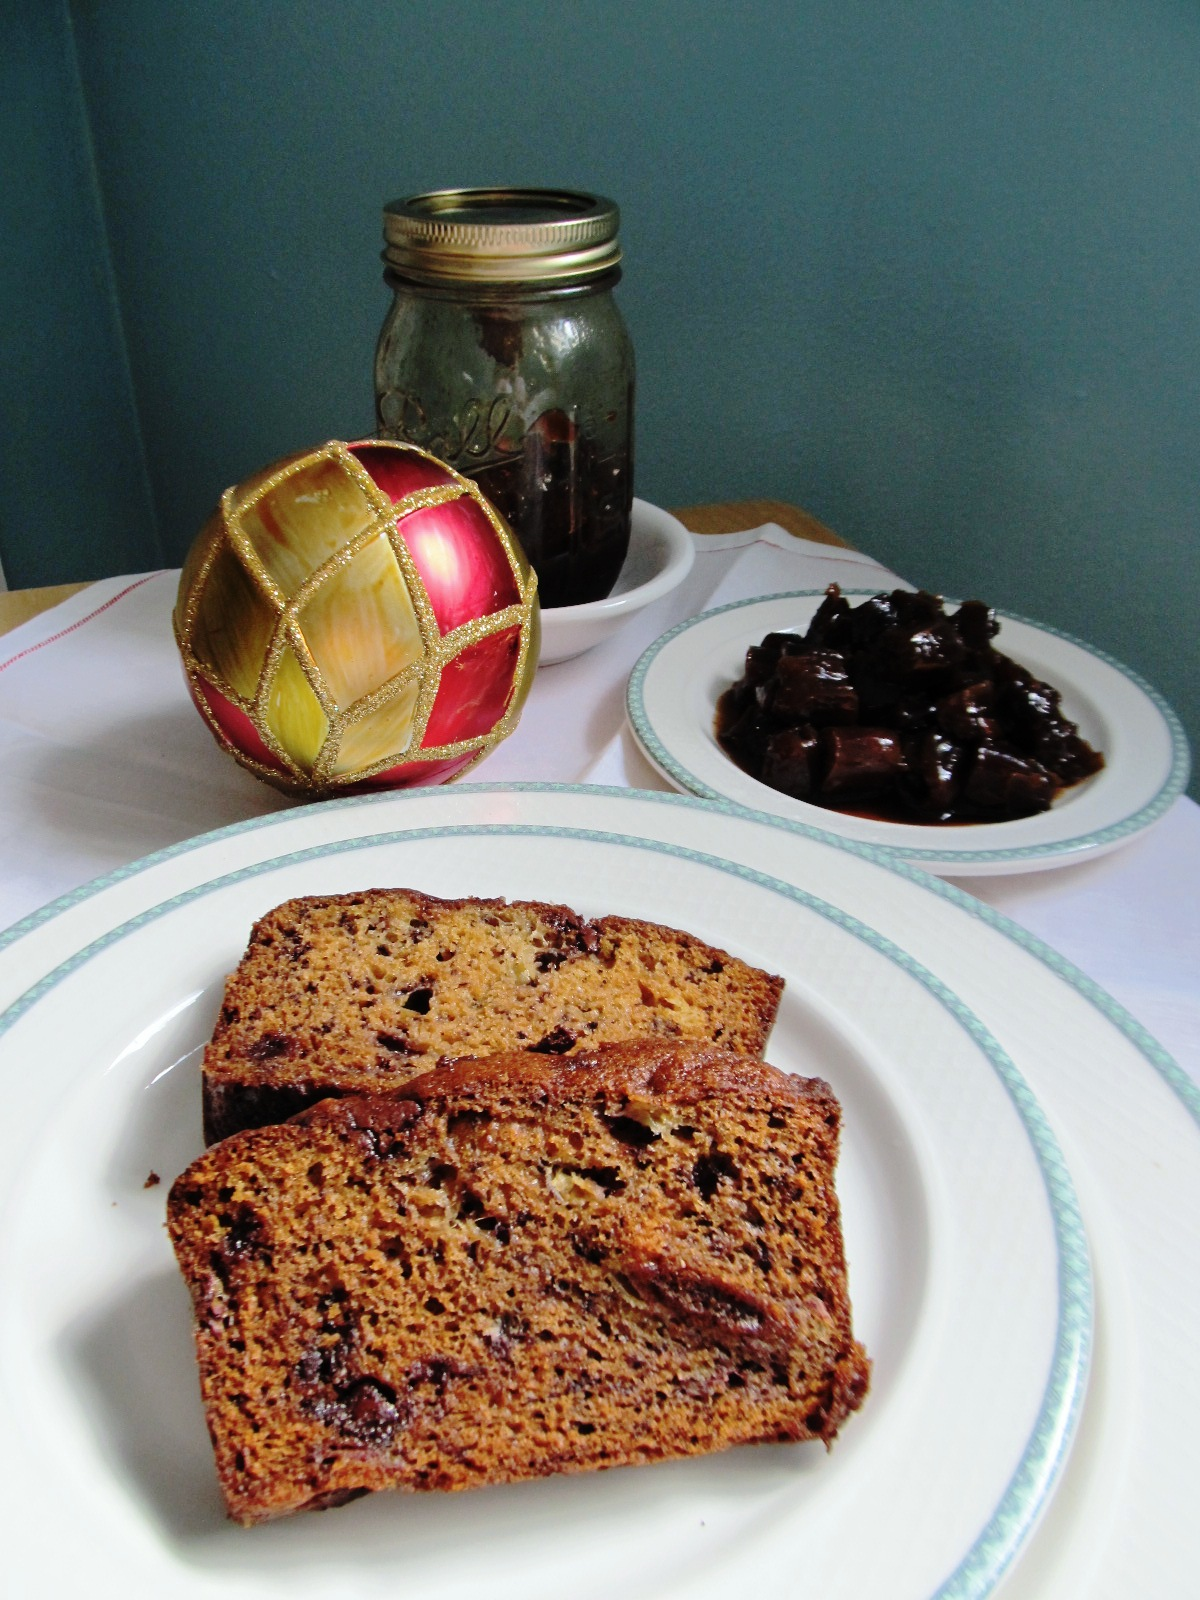 ... bread with chocolate and walnut bread the bread pudding and kahlua